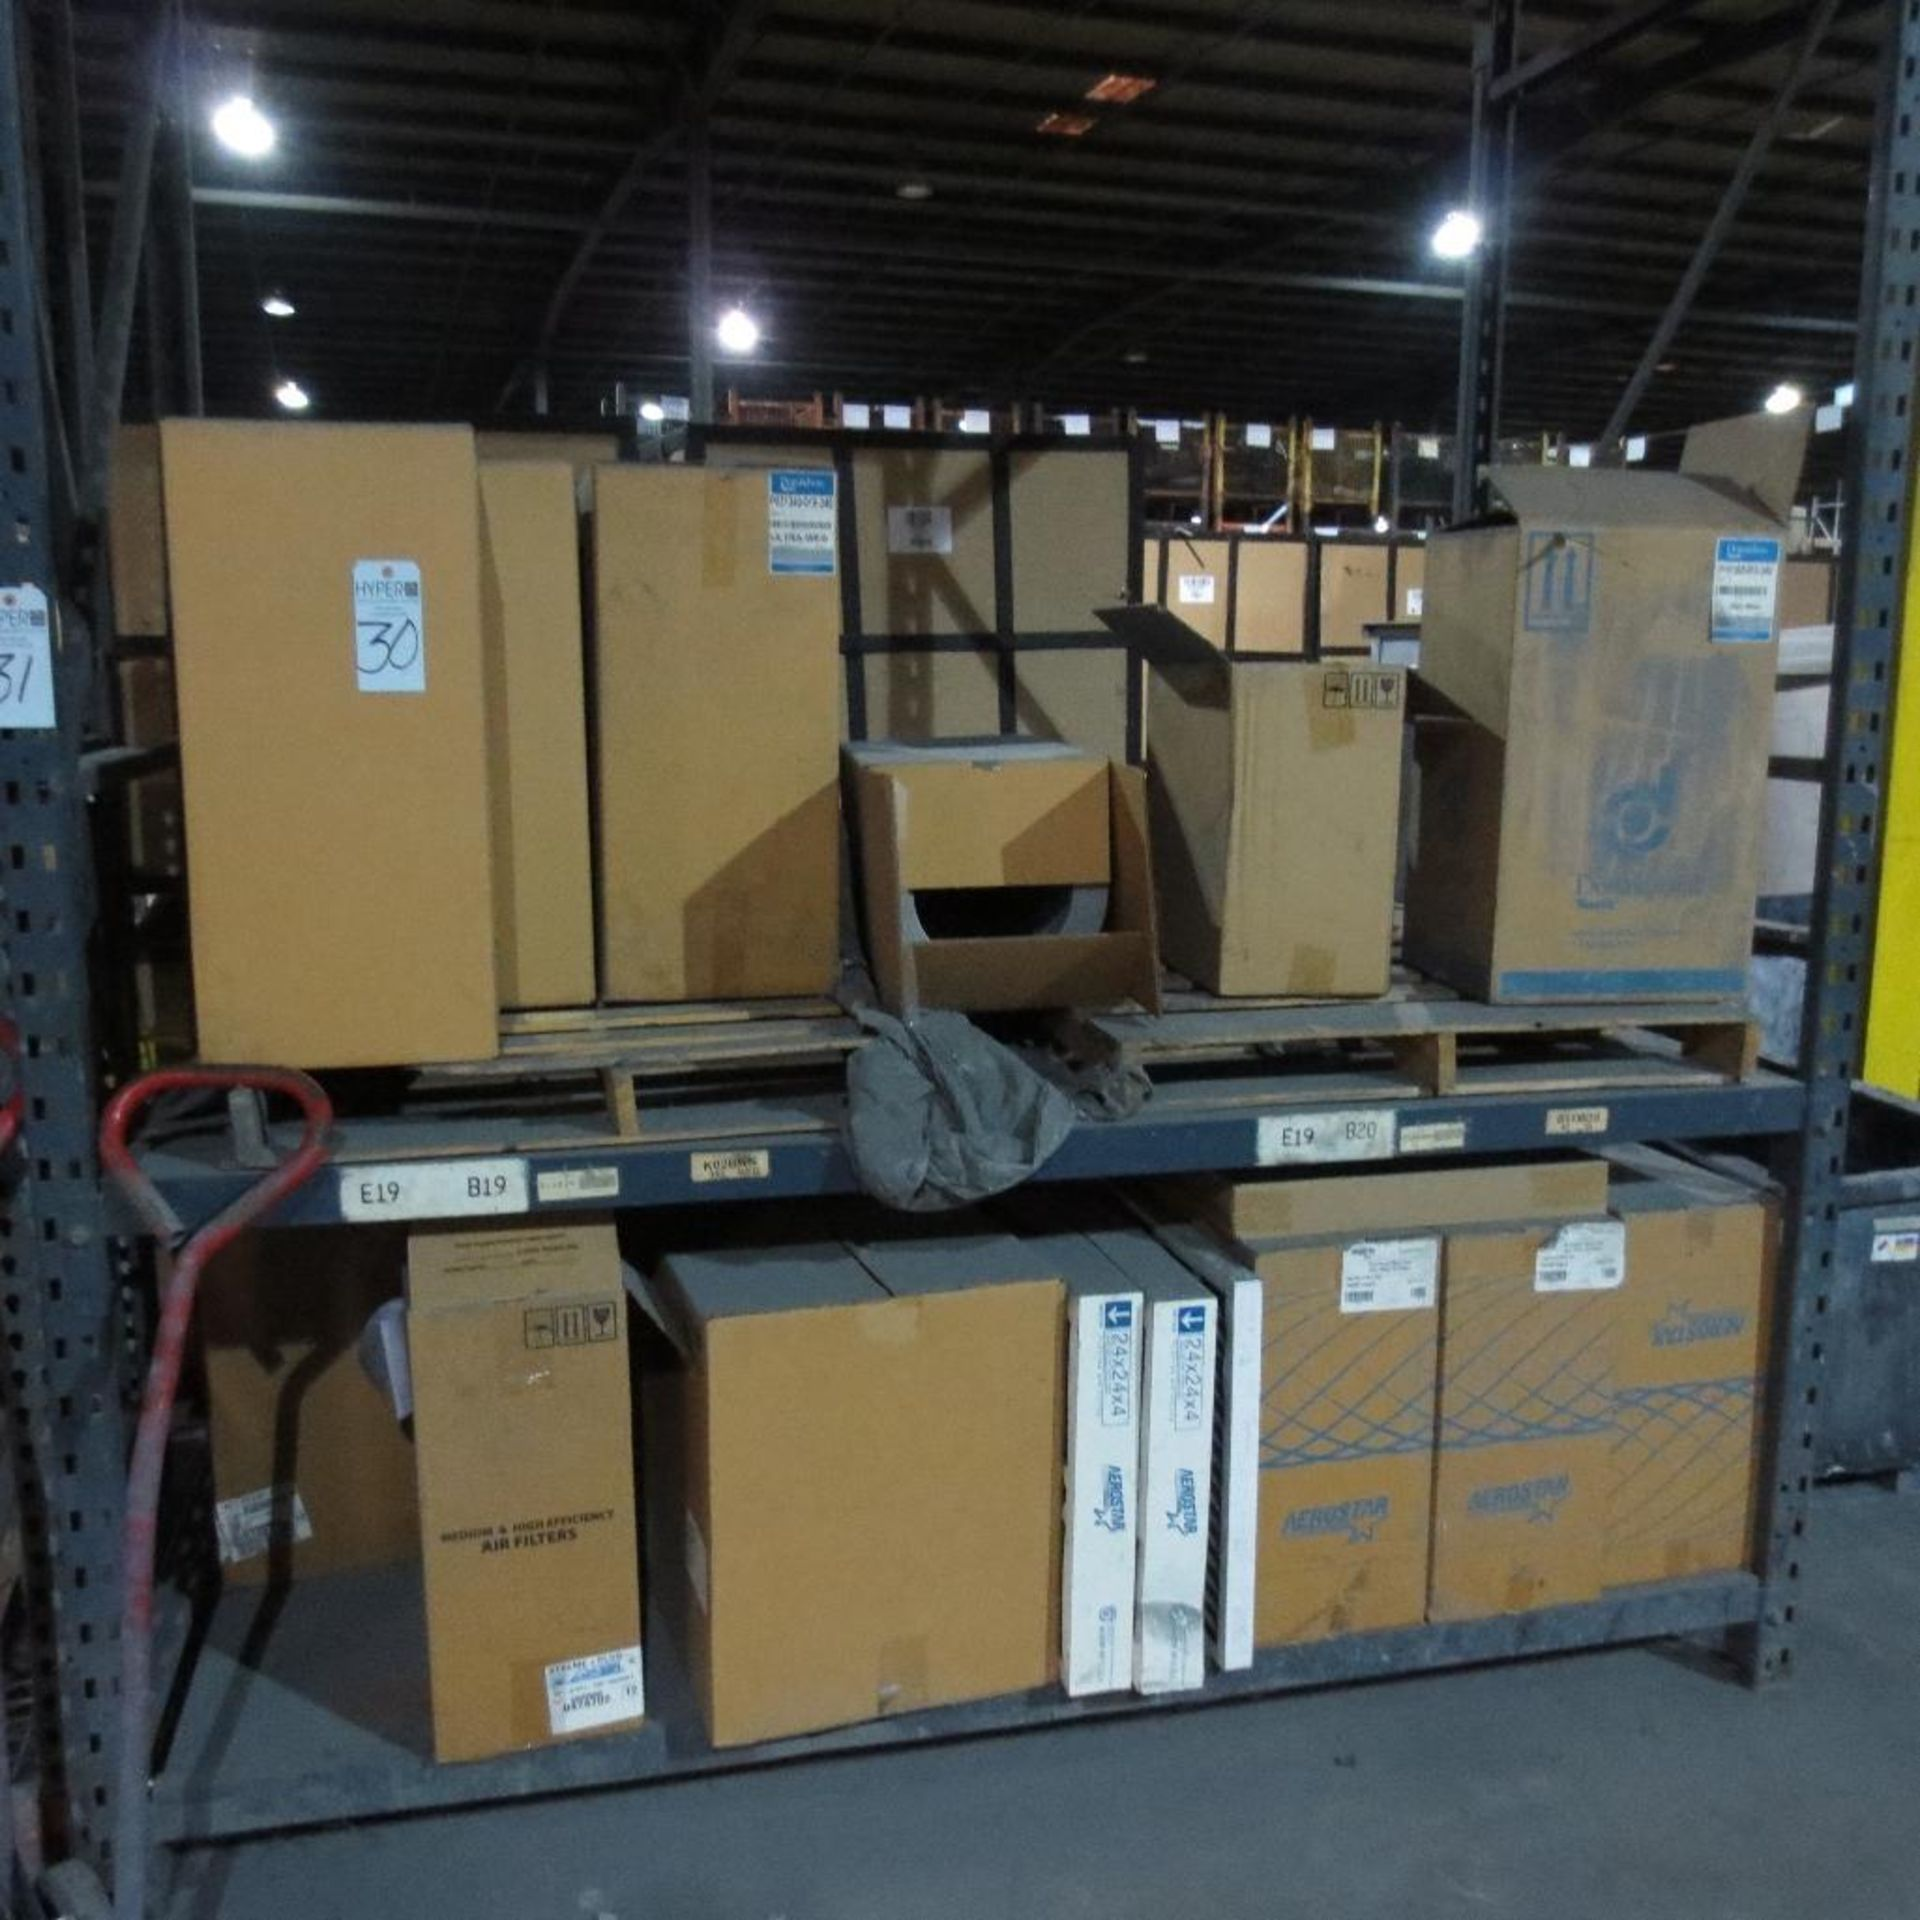 Lot 30 - Filters on Pallet Racking